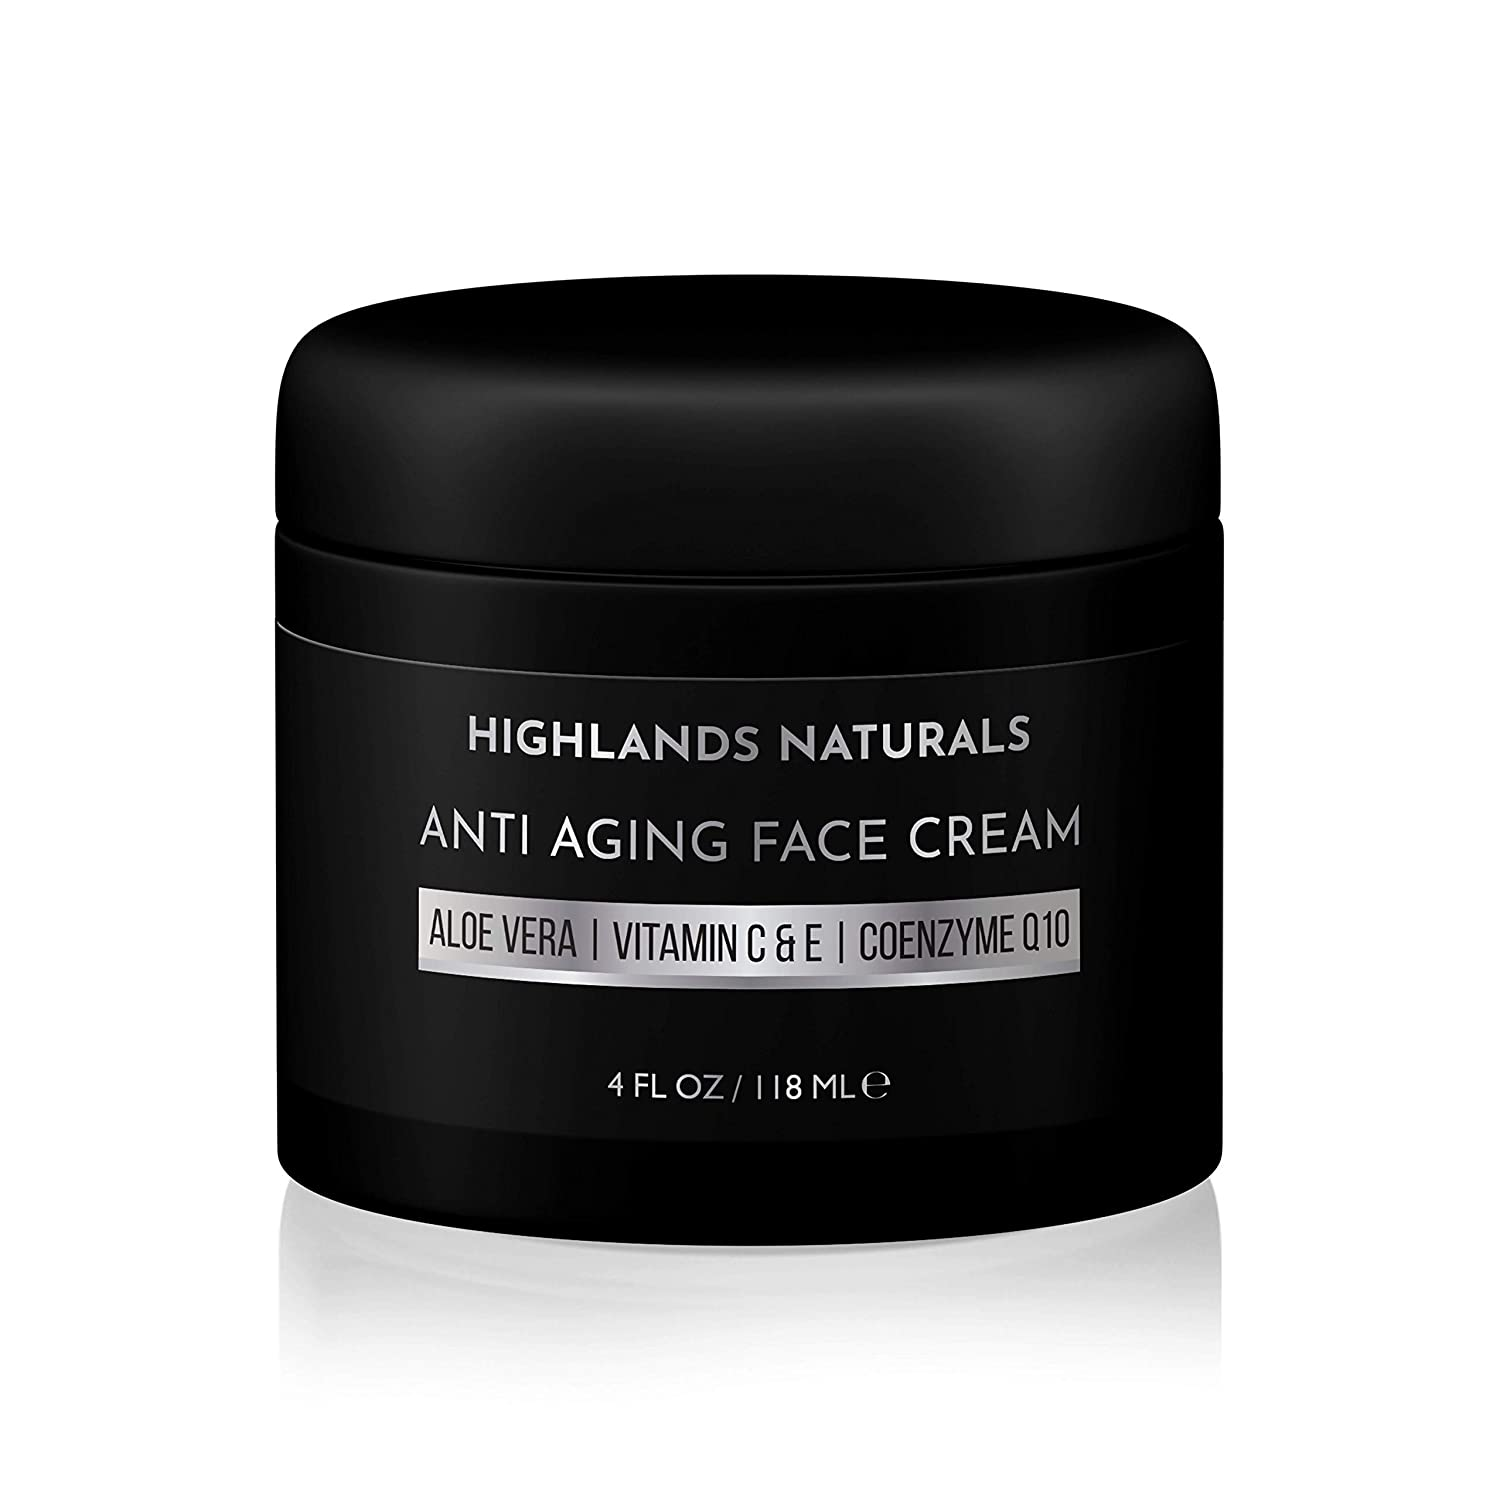 highlands naturals anti-aging face cream for men anti wrinkle face moisturizer, best skin care products for men